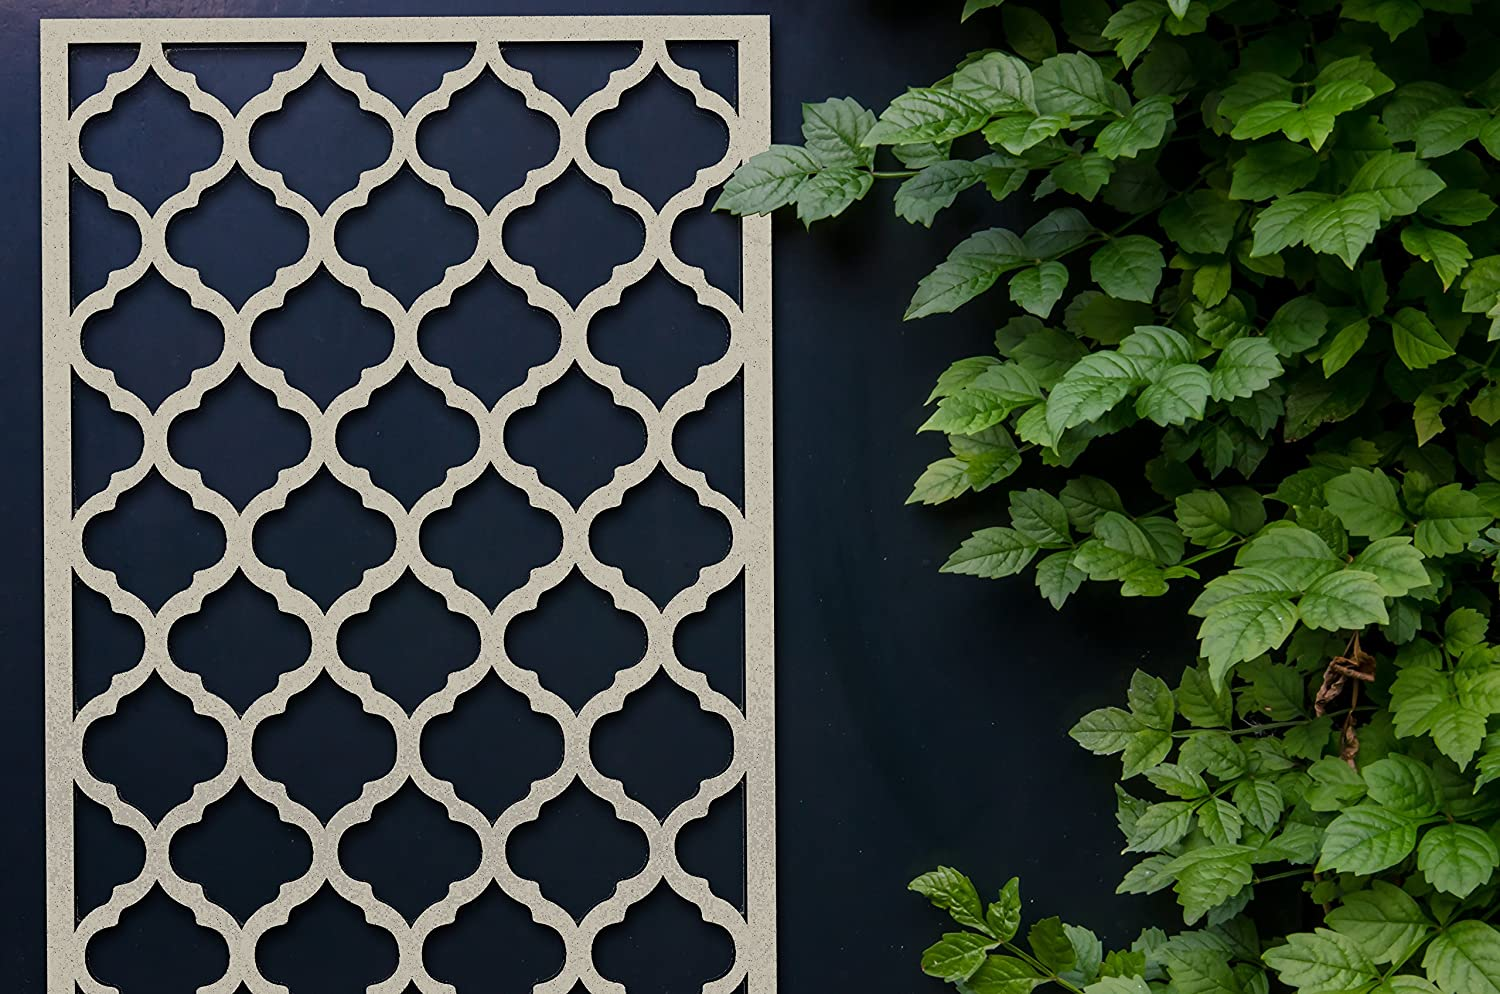 Decorative Trellis Panel Screen With Envy Shatter Garden Privacy Screen Black 1200mm x 600mm x 16mm